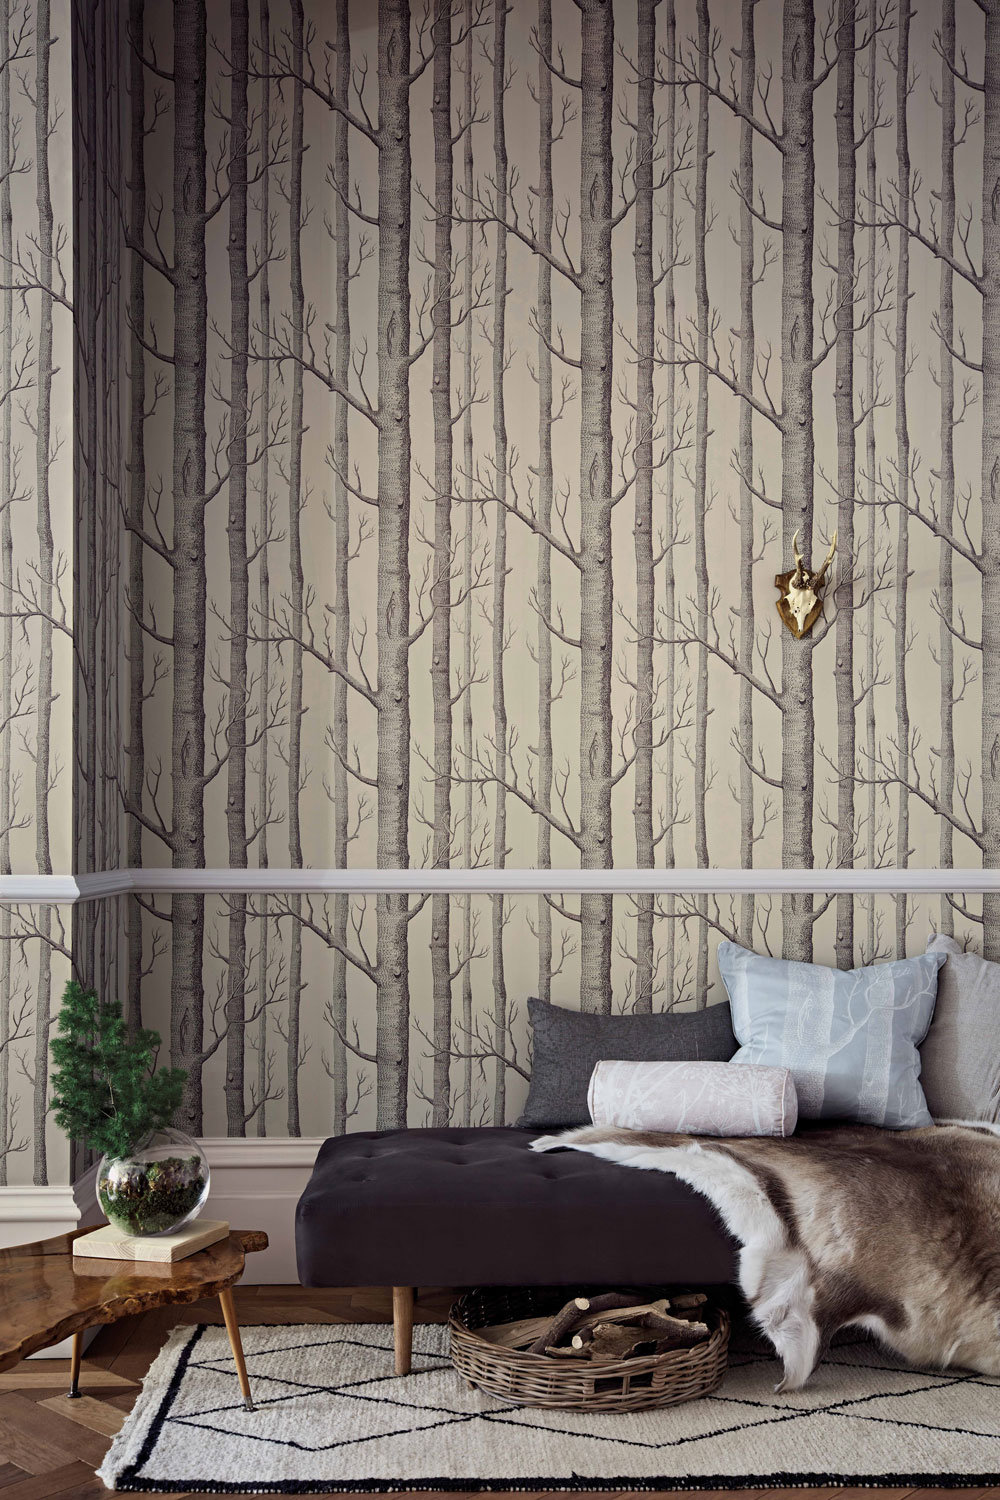 Cole & Son Woods Linen and Charcoal Wallpaper extra image